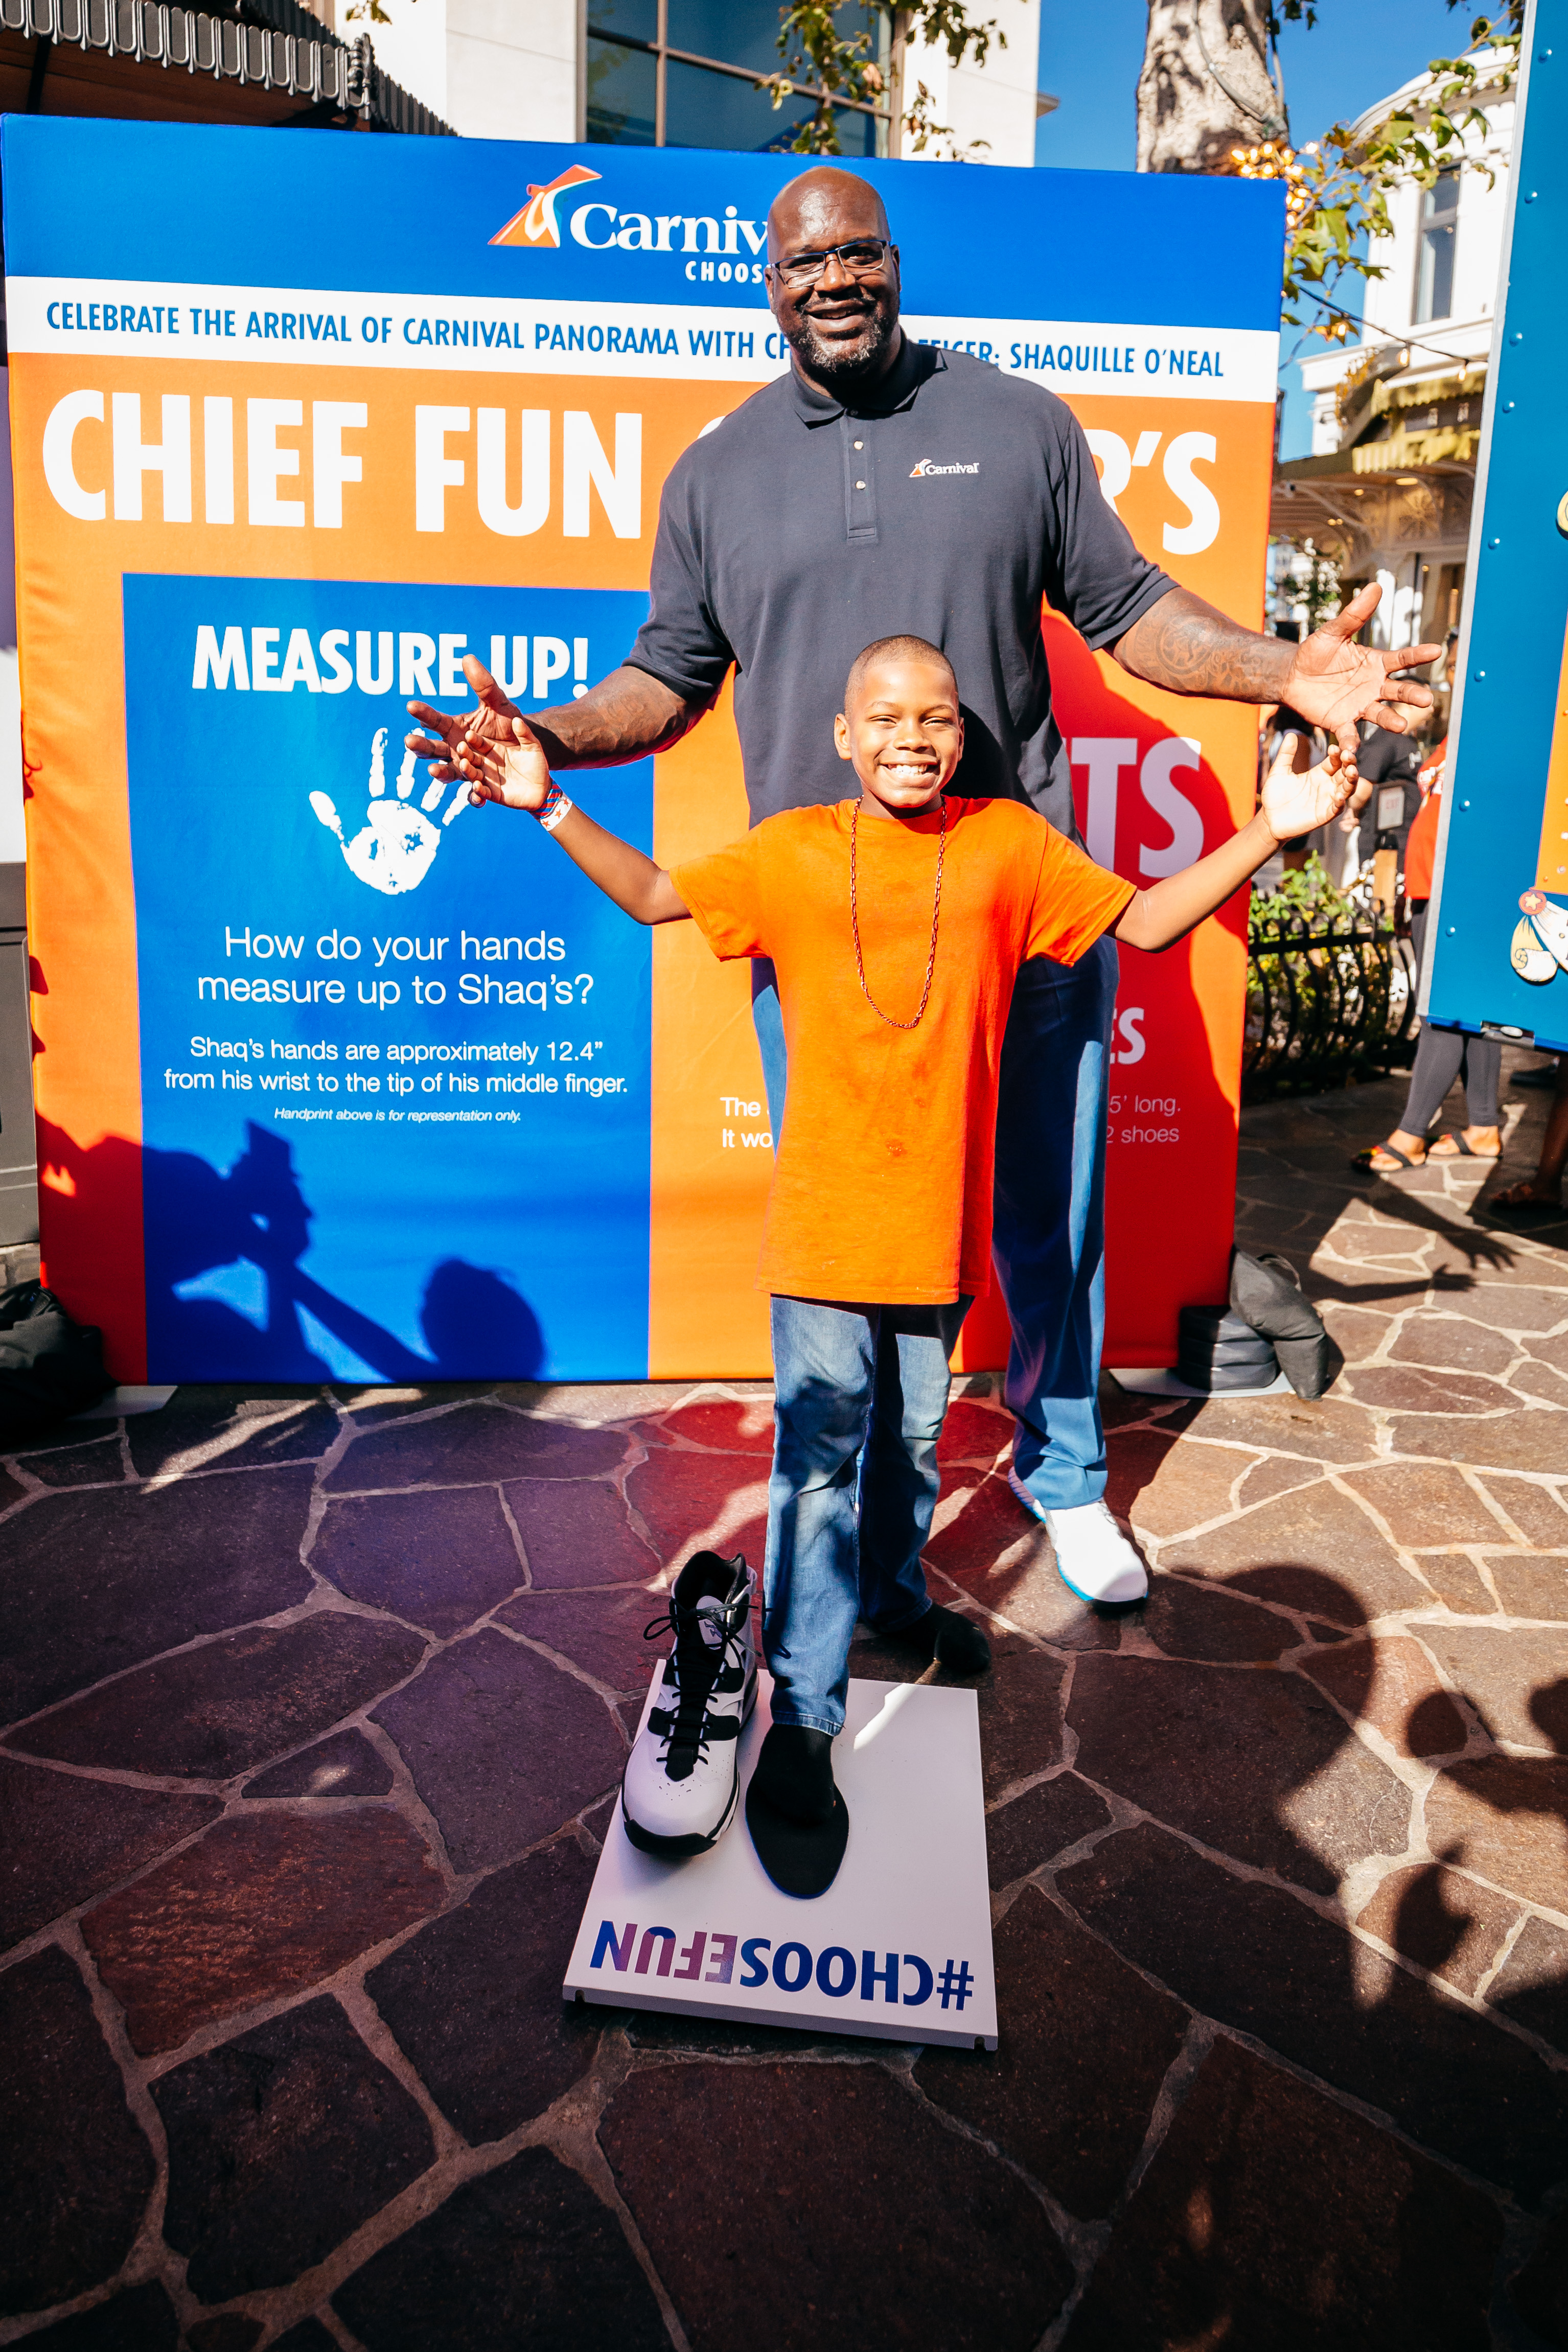 Carnival's CFO Shaquille O'Neal Brings Larger-Than-Life Fun to Los Angeles